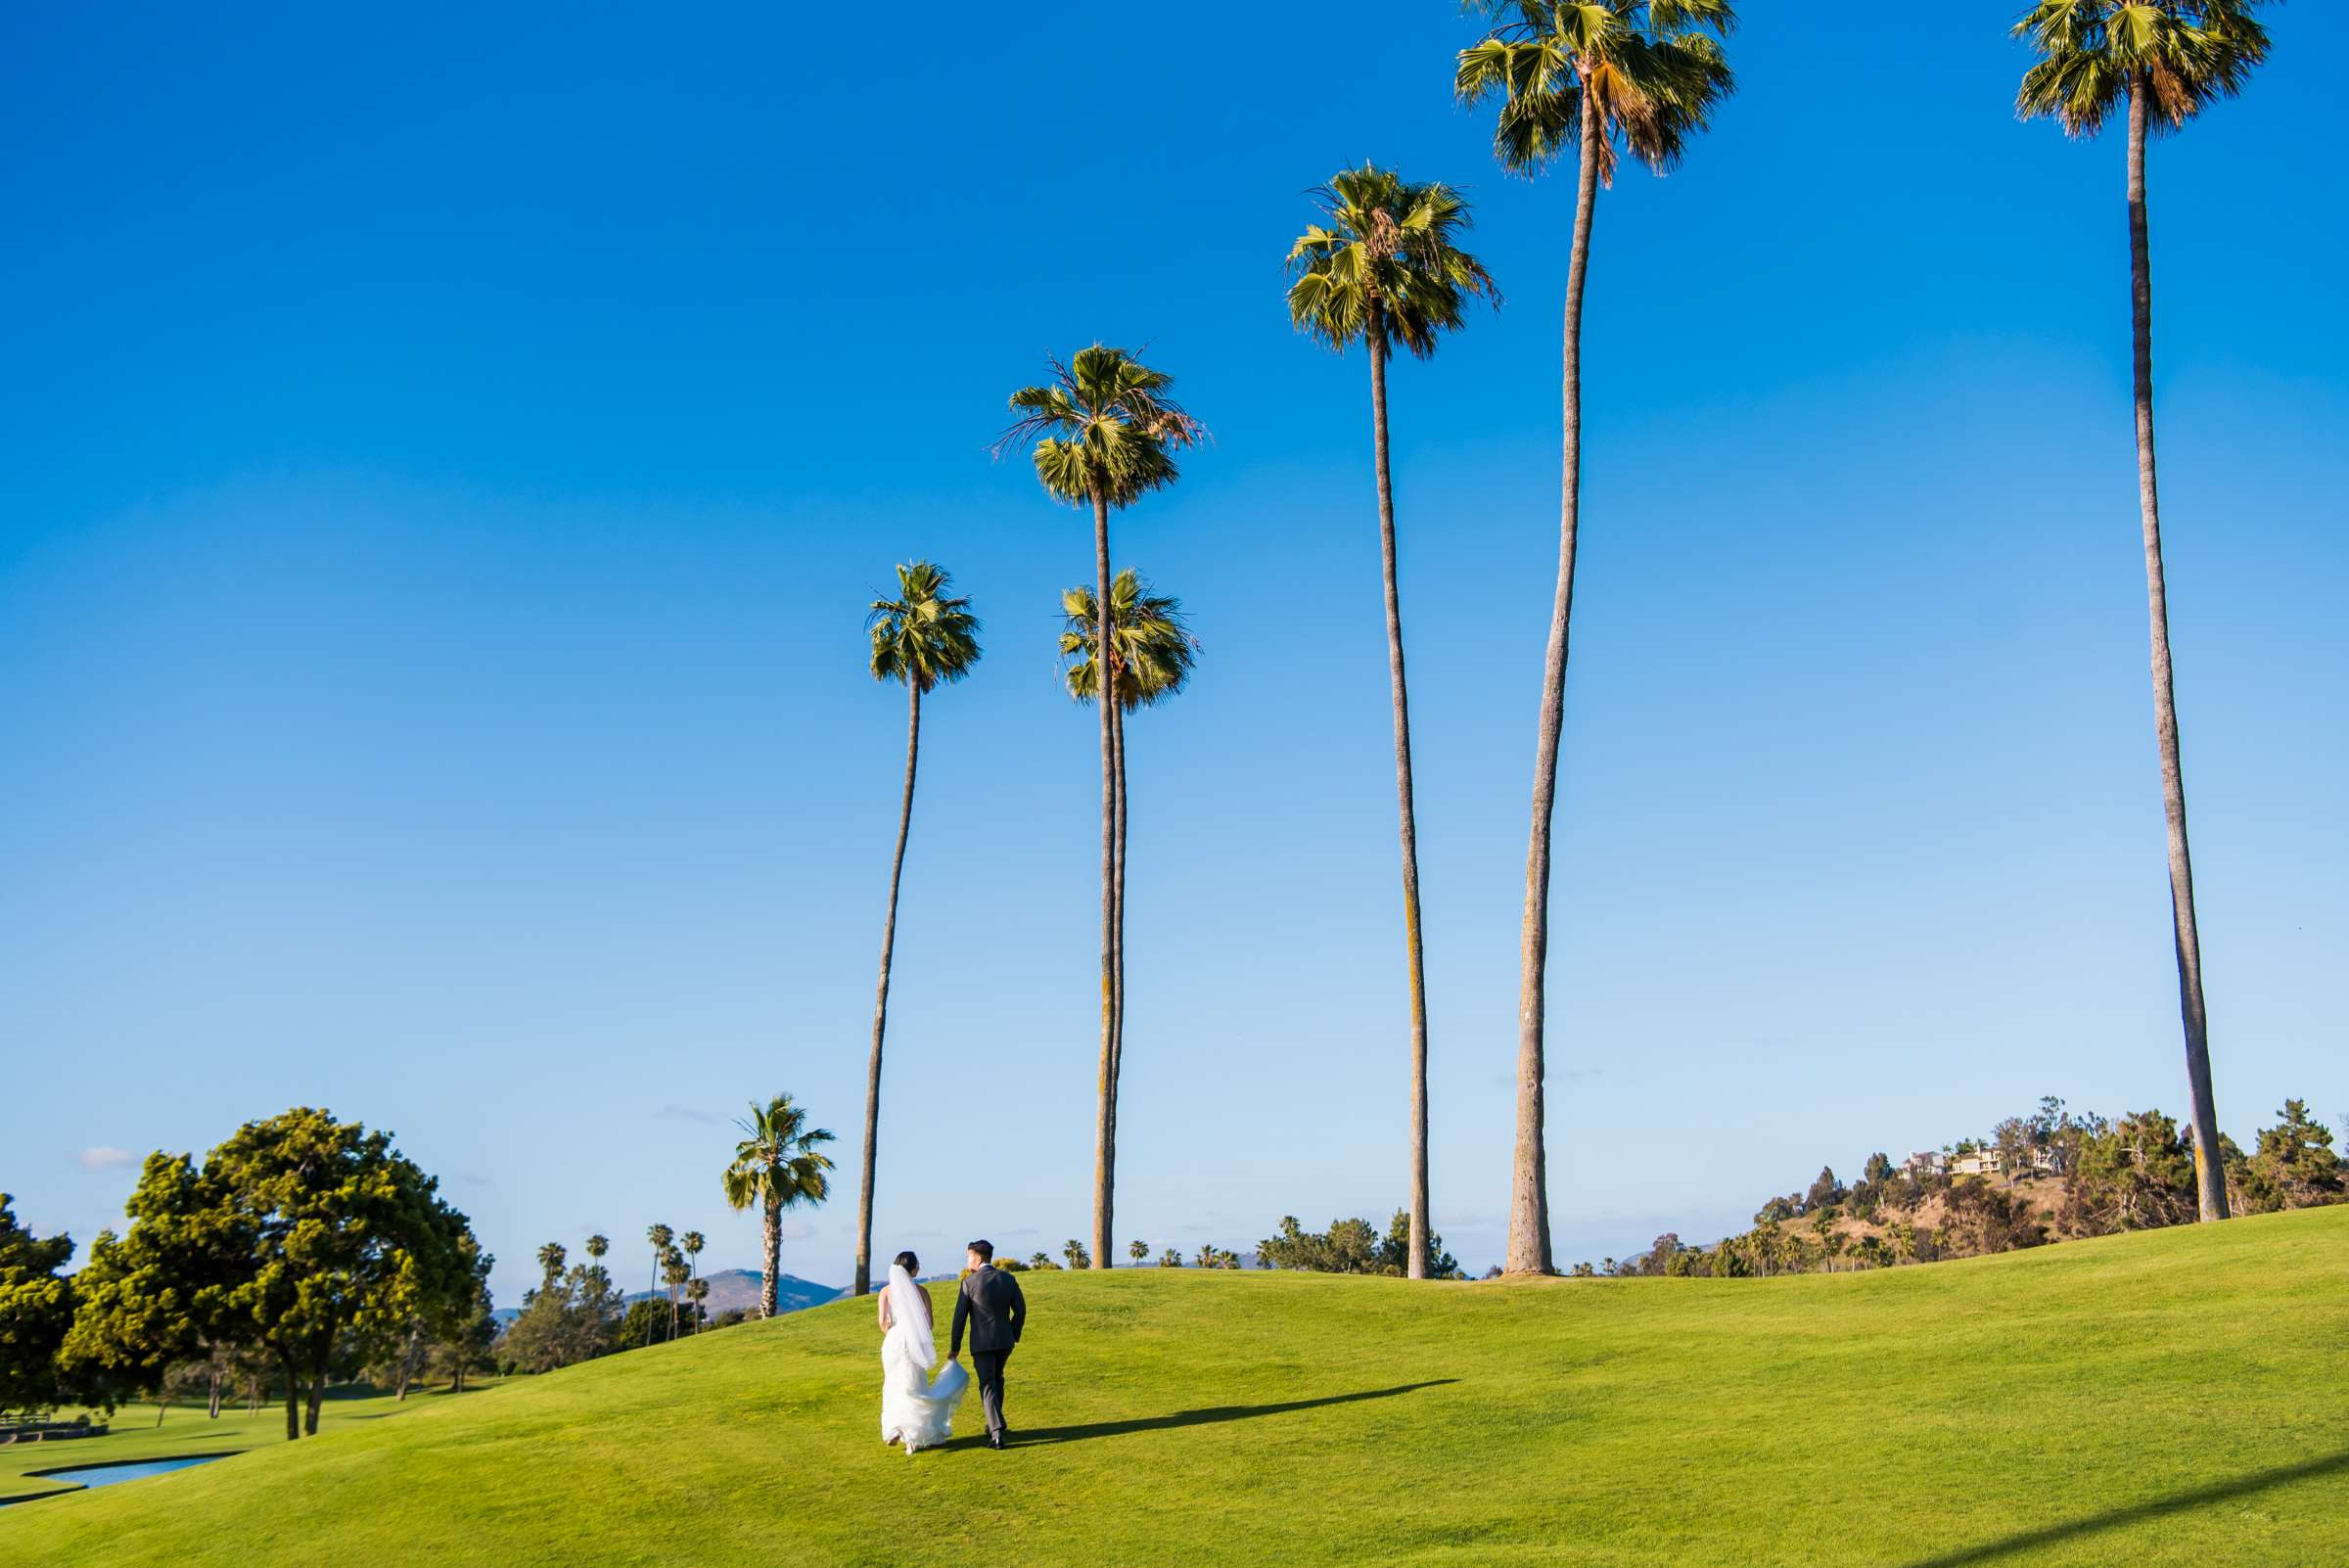 Fairbanks Ranch Country Club Wedding, Sarah and Daniel Wedding Photo #18 by True Photography